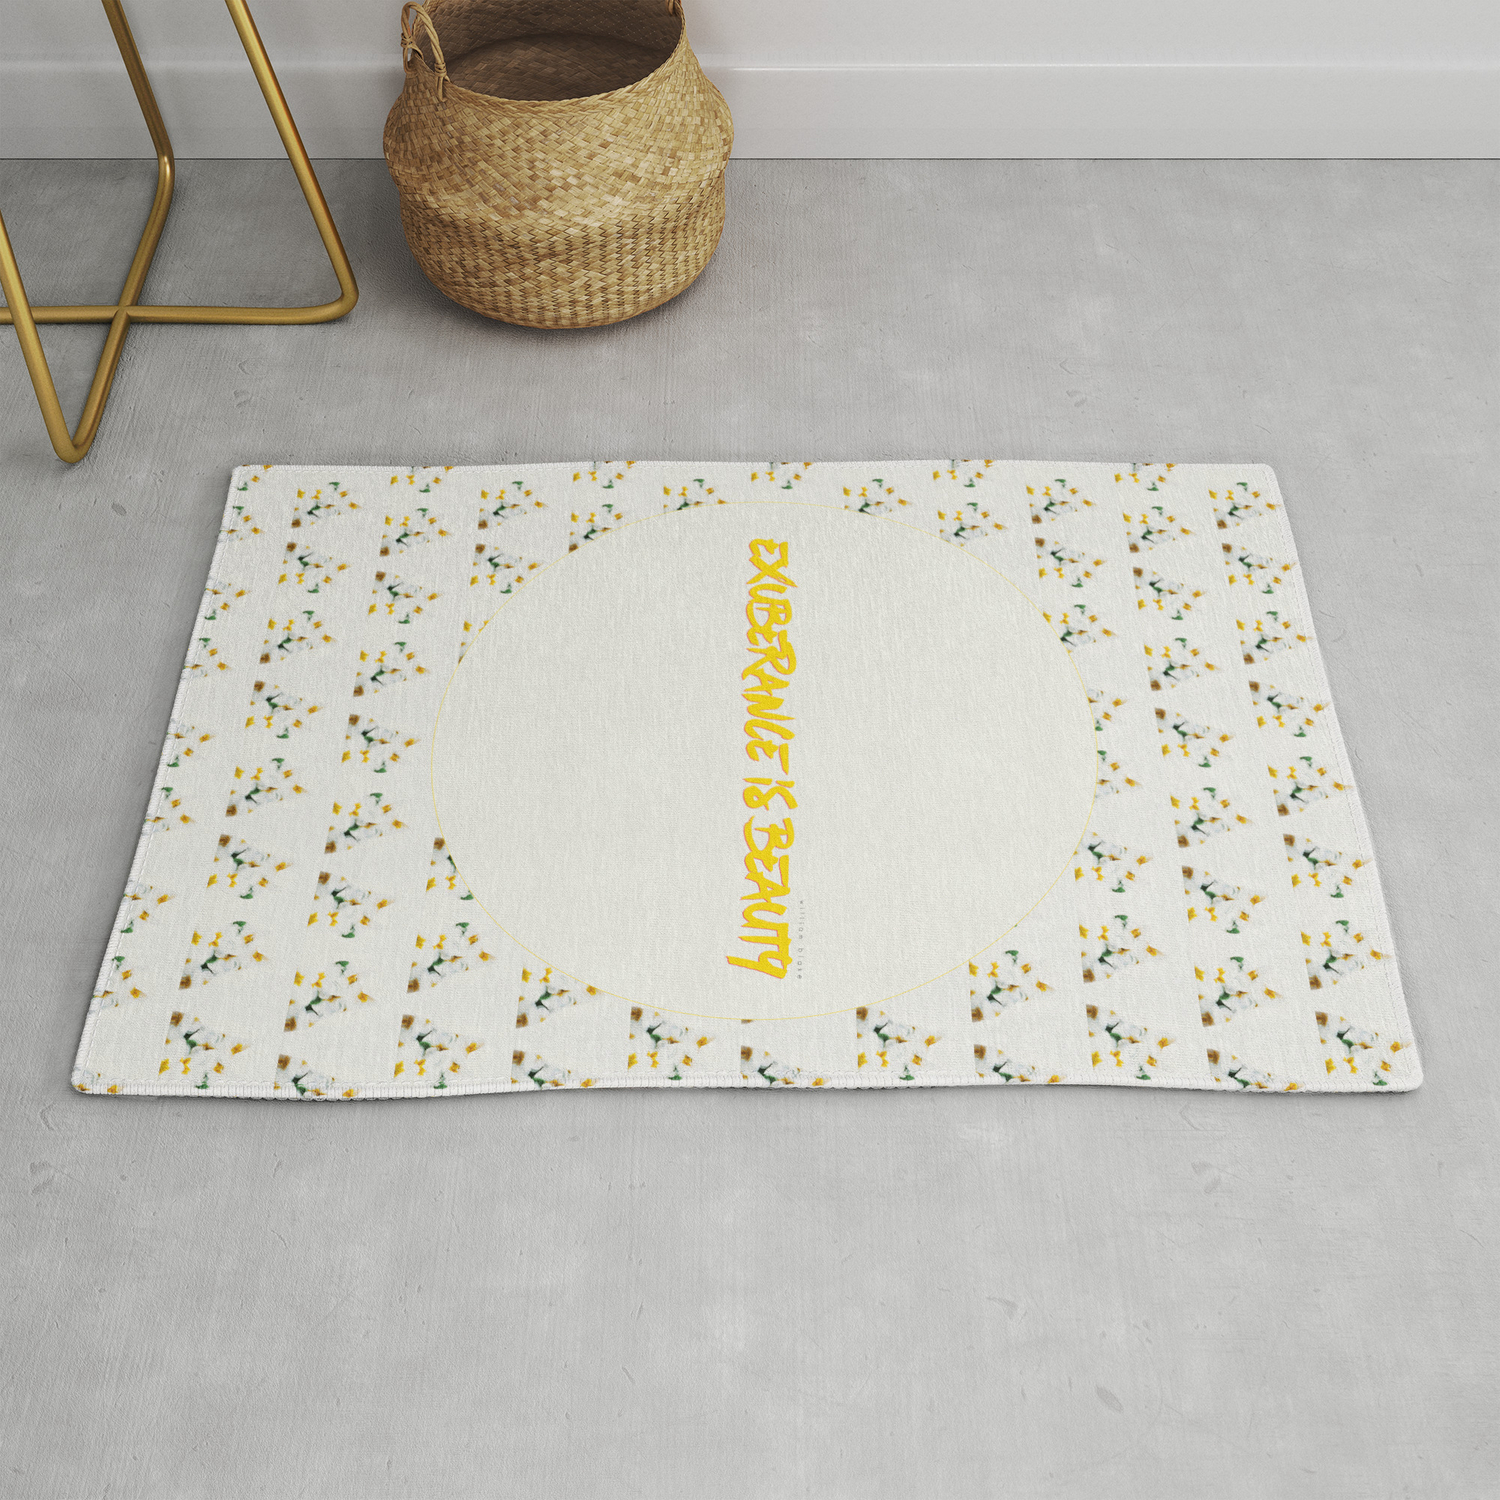 Exuberance Is Beauty Patterned Rug By